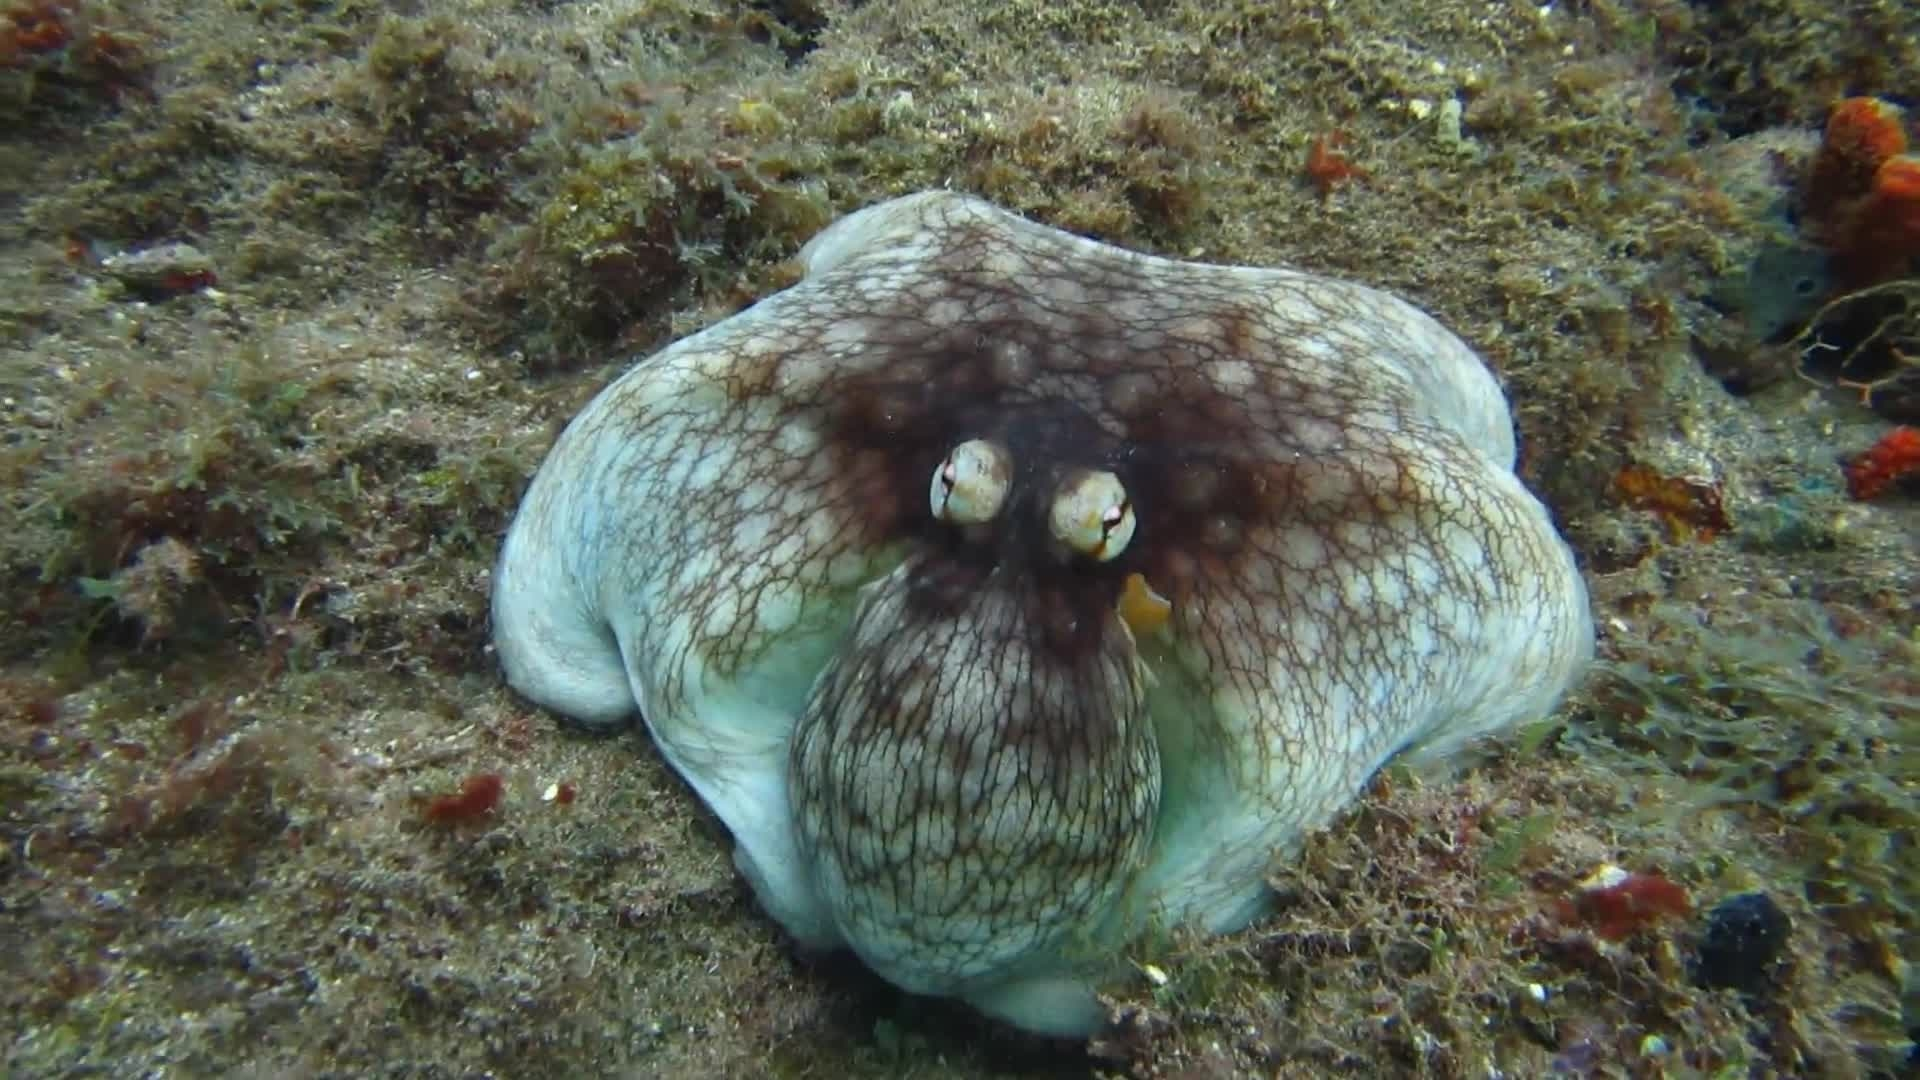 Octopus Emerges from Reef Camouflage